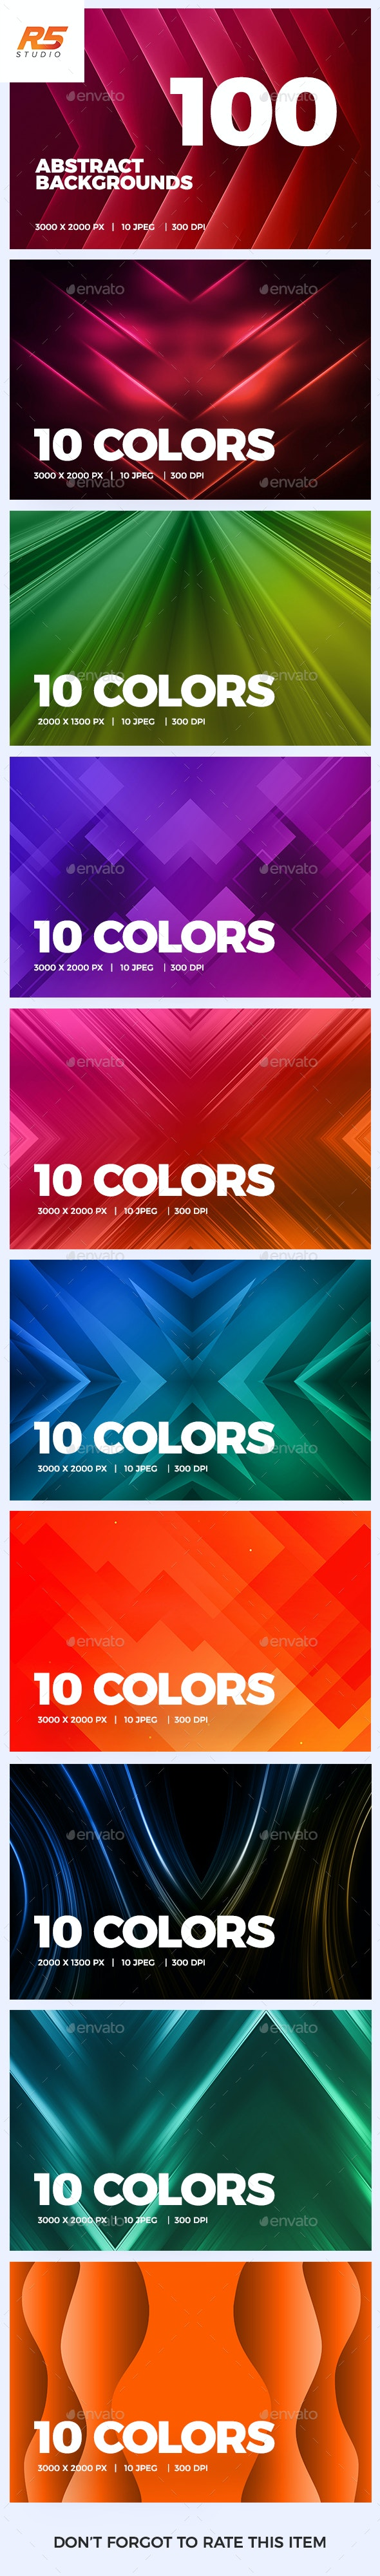 100 Abstract Background Bundle - Abstract Backgrounds